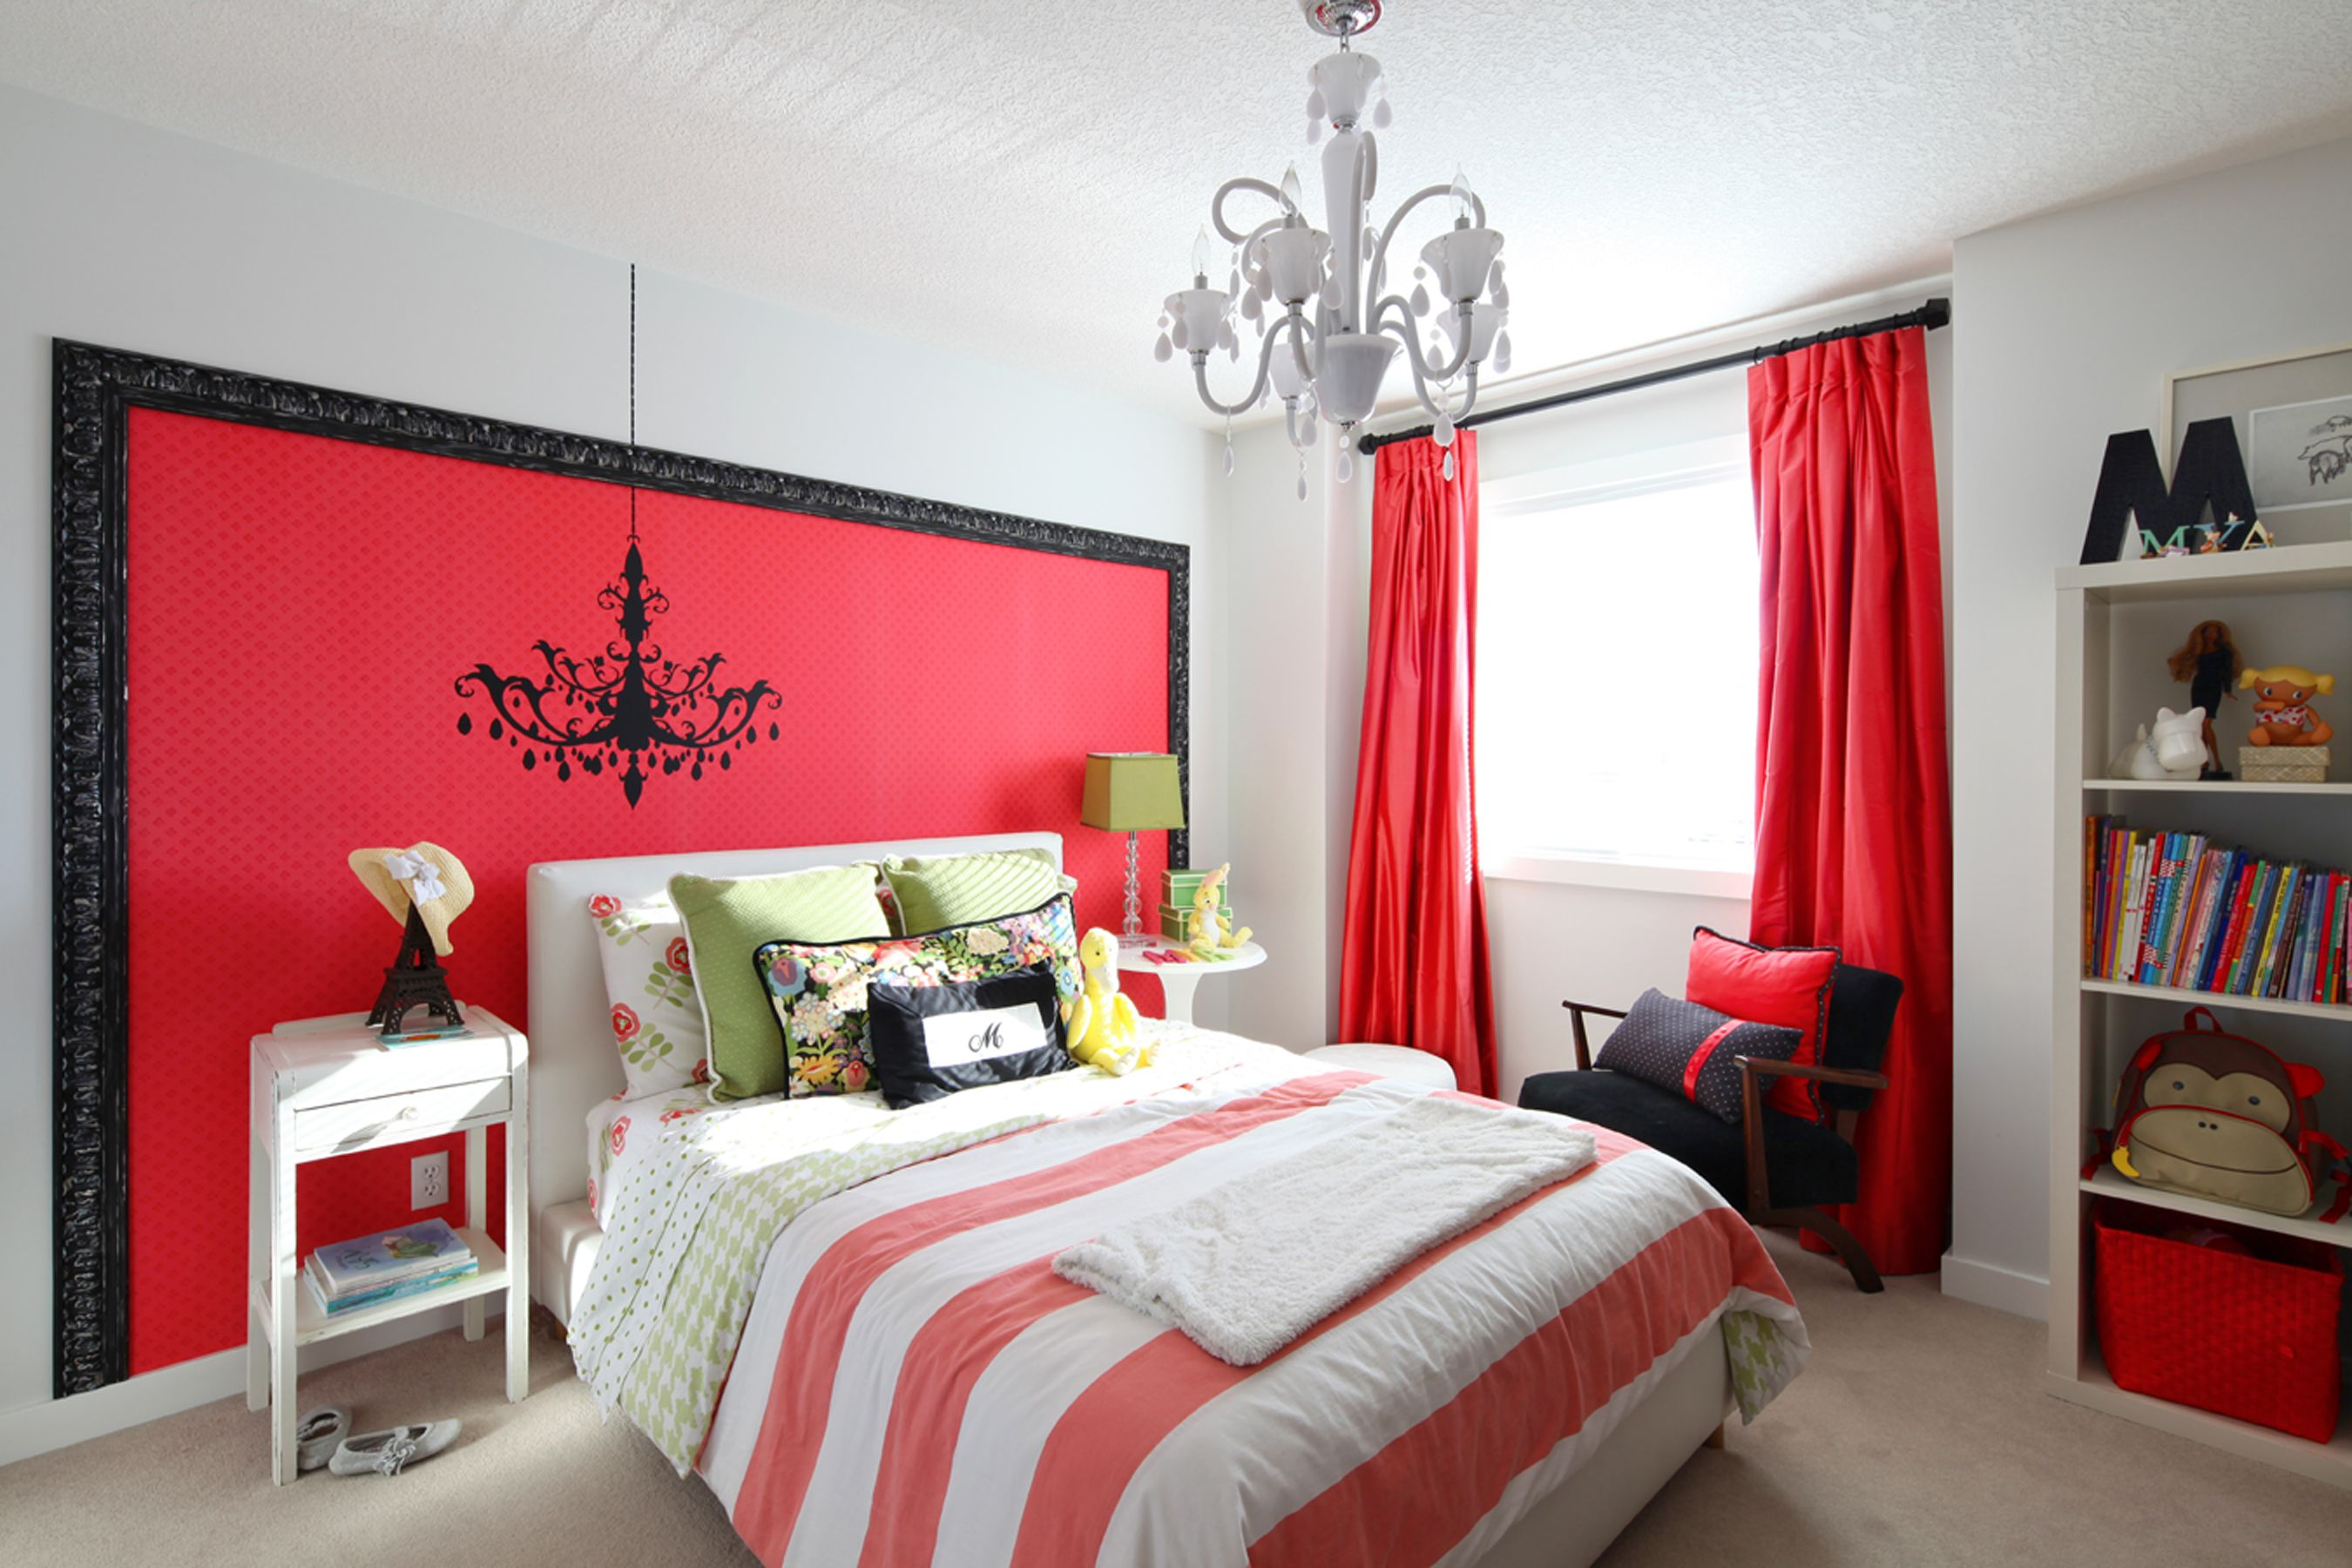 Teen / Tween Bedroom Ideas That are Fun and Cool | Bedrooms ...